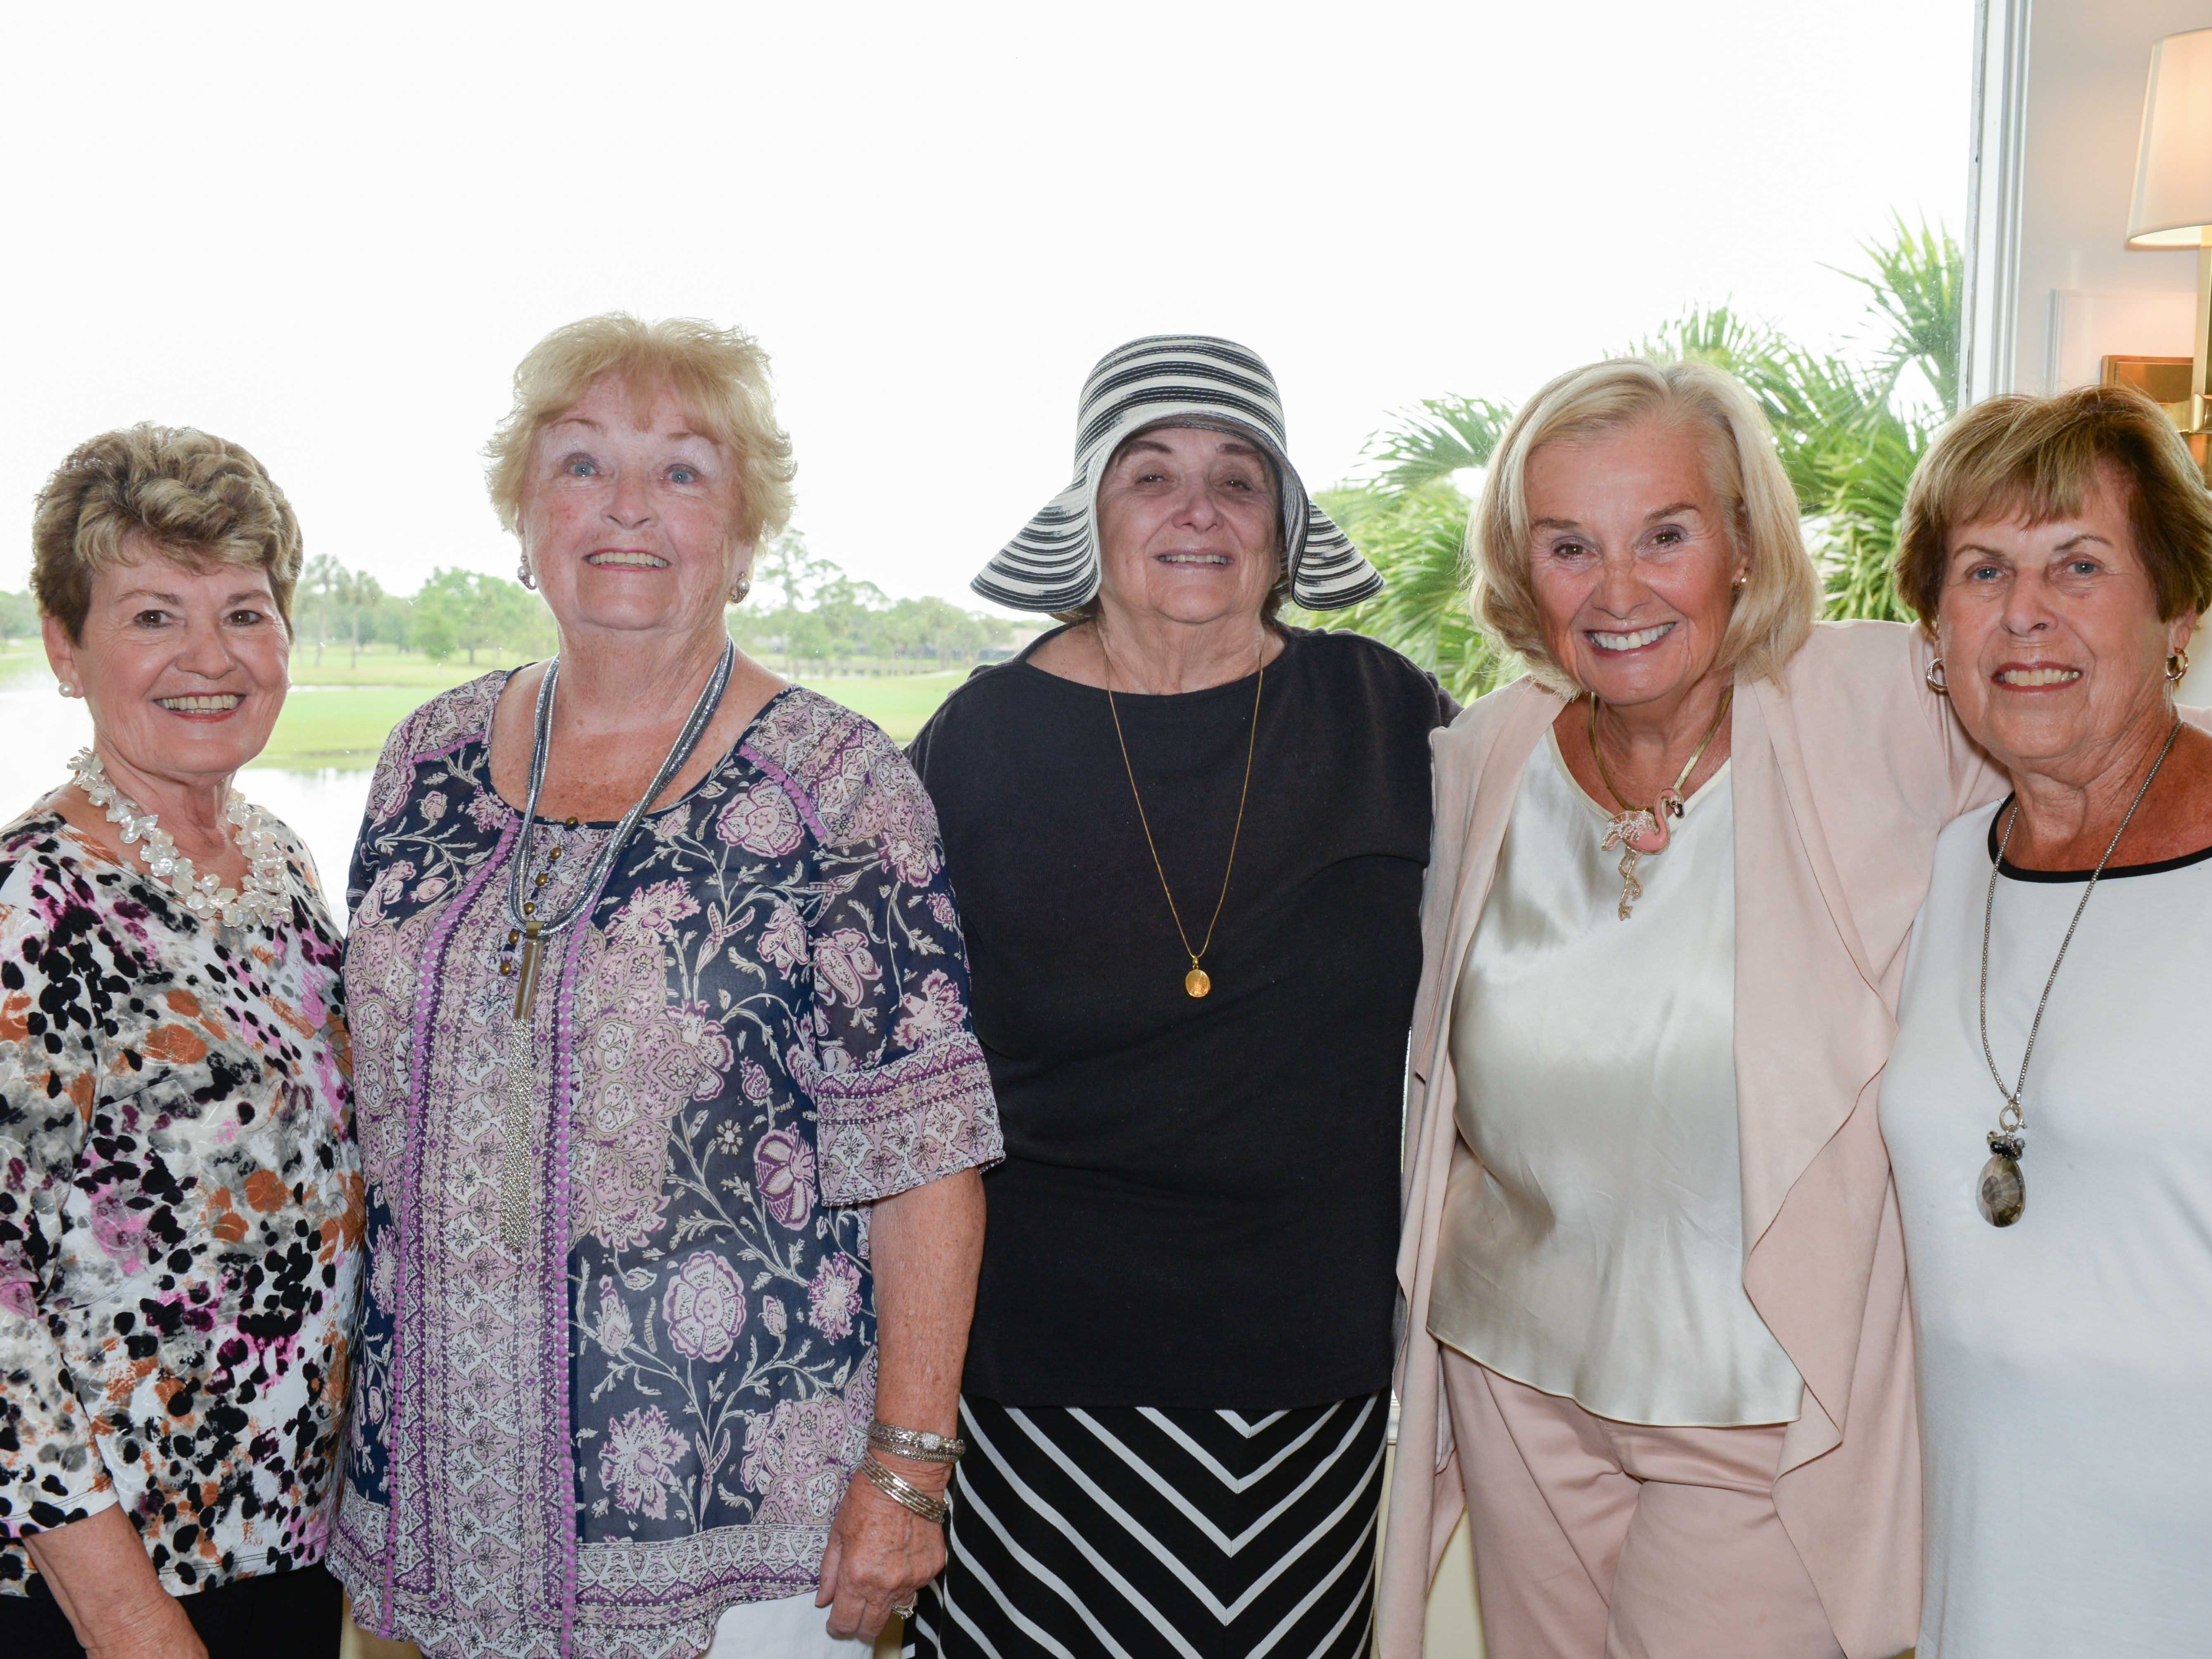 Florence Gantt, left, Lorraine Maloney, Jan Gaudin, Marikate Barnes and Judy Walker at the Sapphire Anniversary luncheon of the American Association of University Women Stuart Branch at Mariner Sands Country Club.